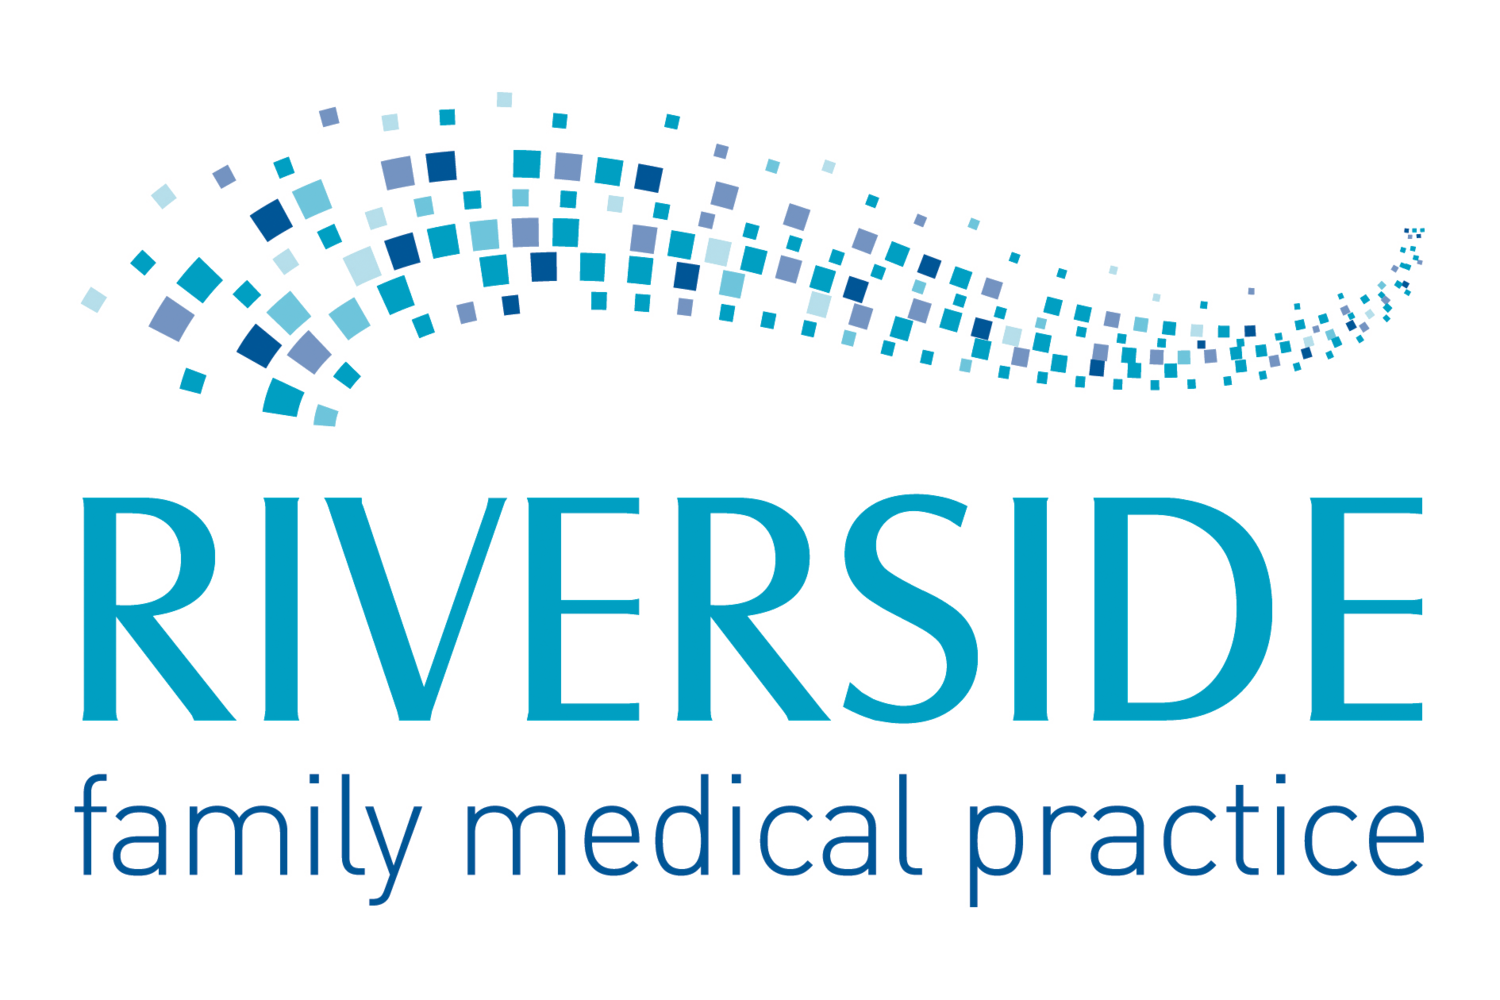 Riverside Family Medical Practice